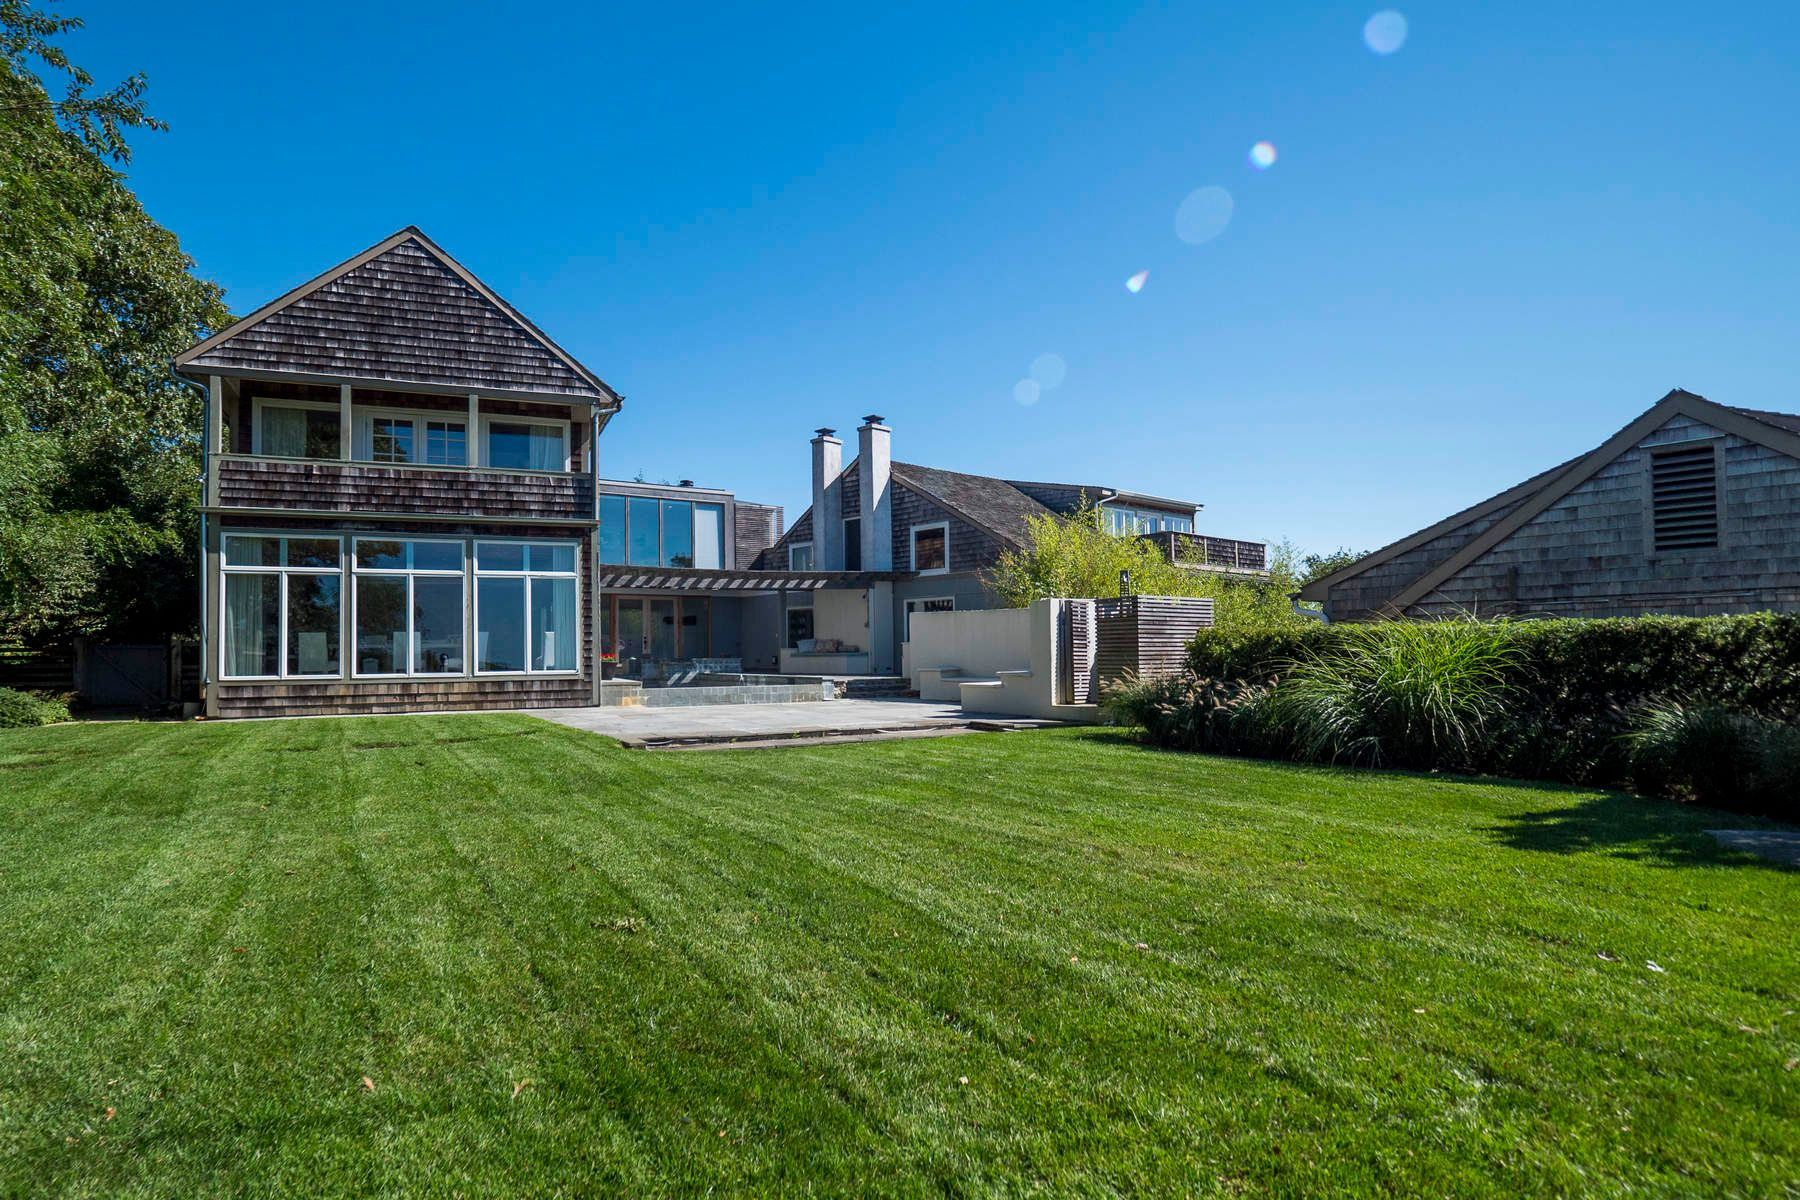 Single Family Home for Rent at POST MODERN BARN, INFINITY POOL Sagaponack, New York 11962 United States